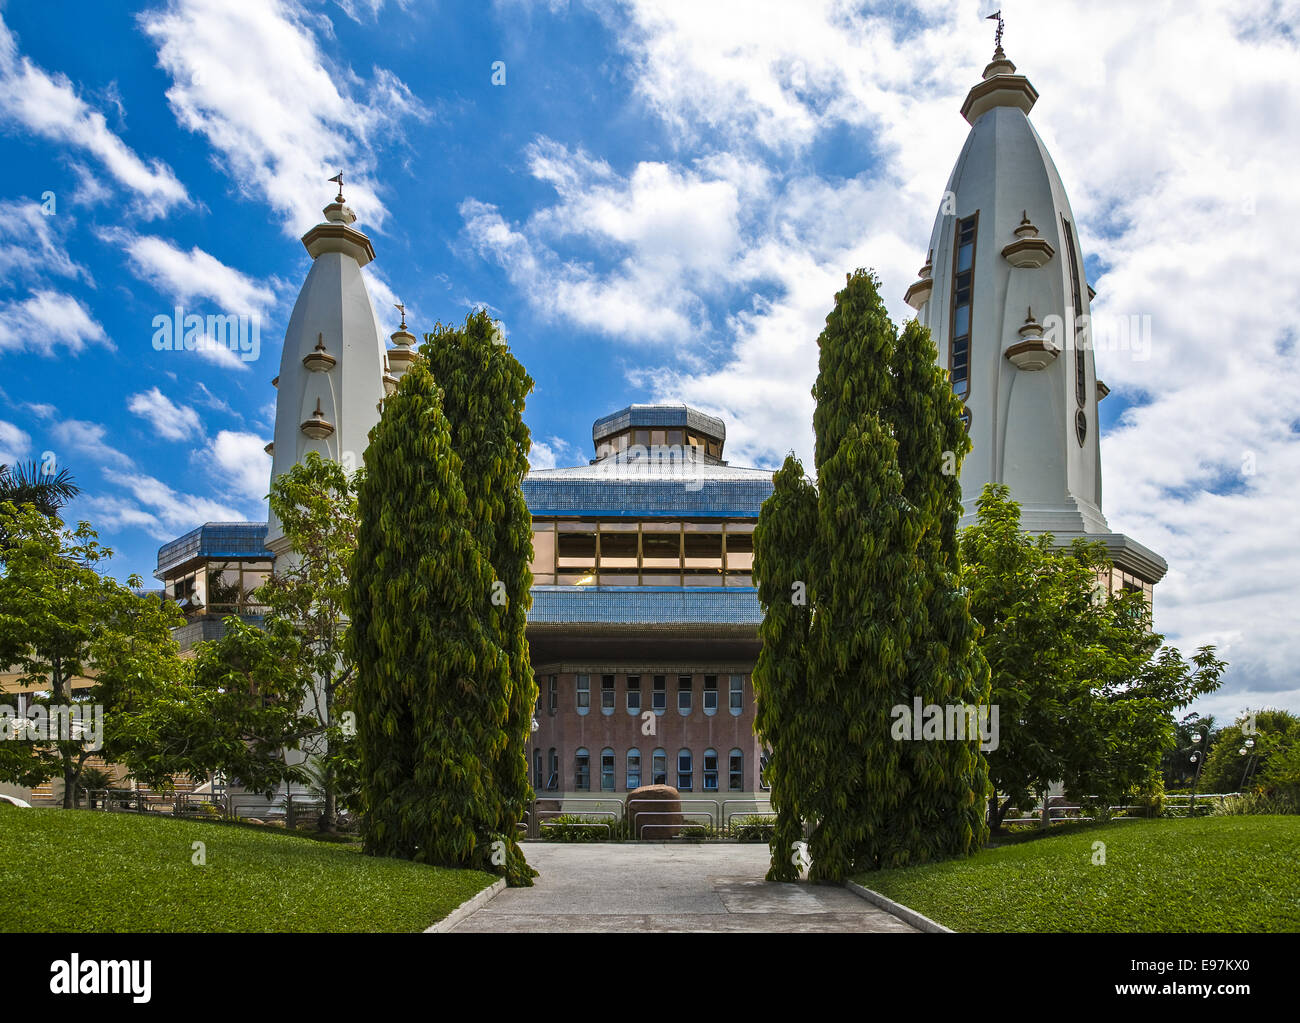 South Africa, Durban, Chats Wort indian quarter, the Krishna temple - Stock Image